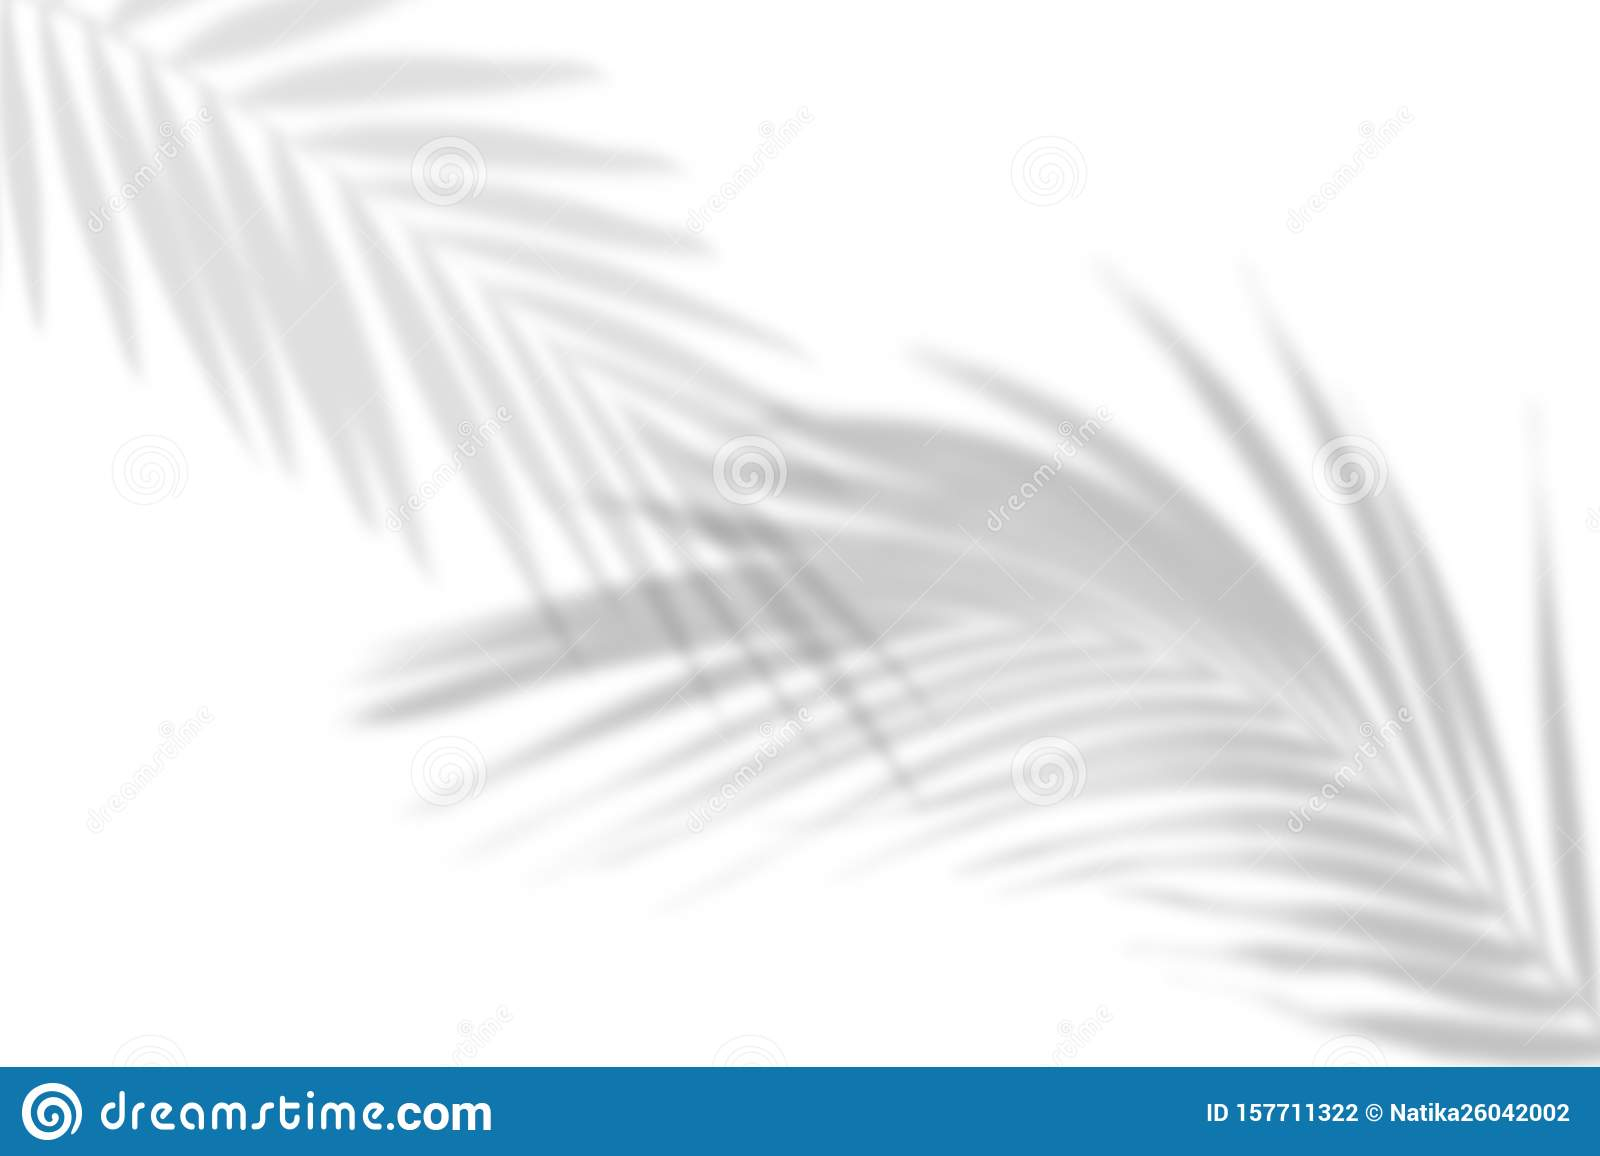 The Shadow Of Tropical Leaves On The White Wall Palm Leaves Black And White Image To Overlay Photos Or Layout Stock Photo Image Of Effect Botany 157711322 30 realistic tropical leaves pack is one of the best realistic tropical leaves overlays. https www dreamstime com shadow tropical leaves white wall palm black image to overlay photos layout art artistic backdrop background image157711322